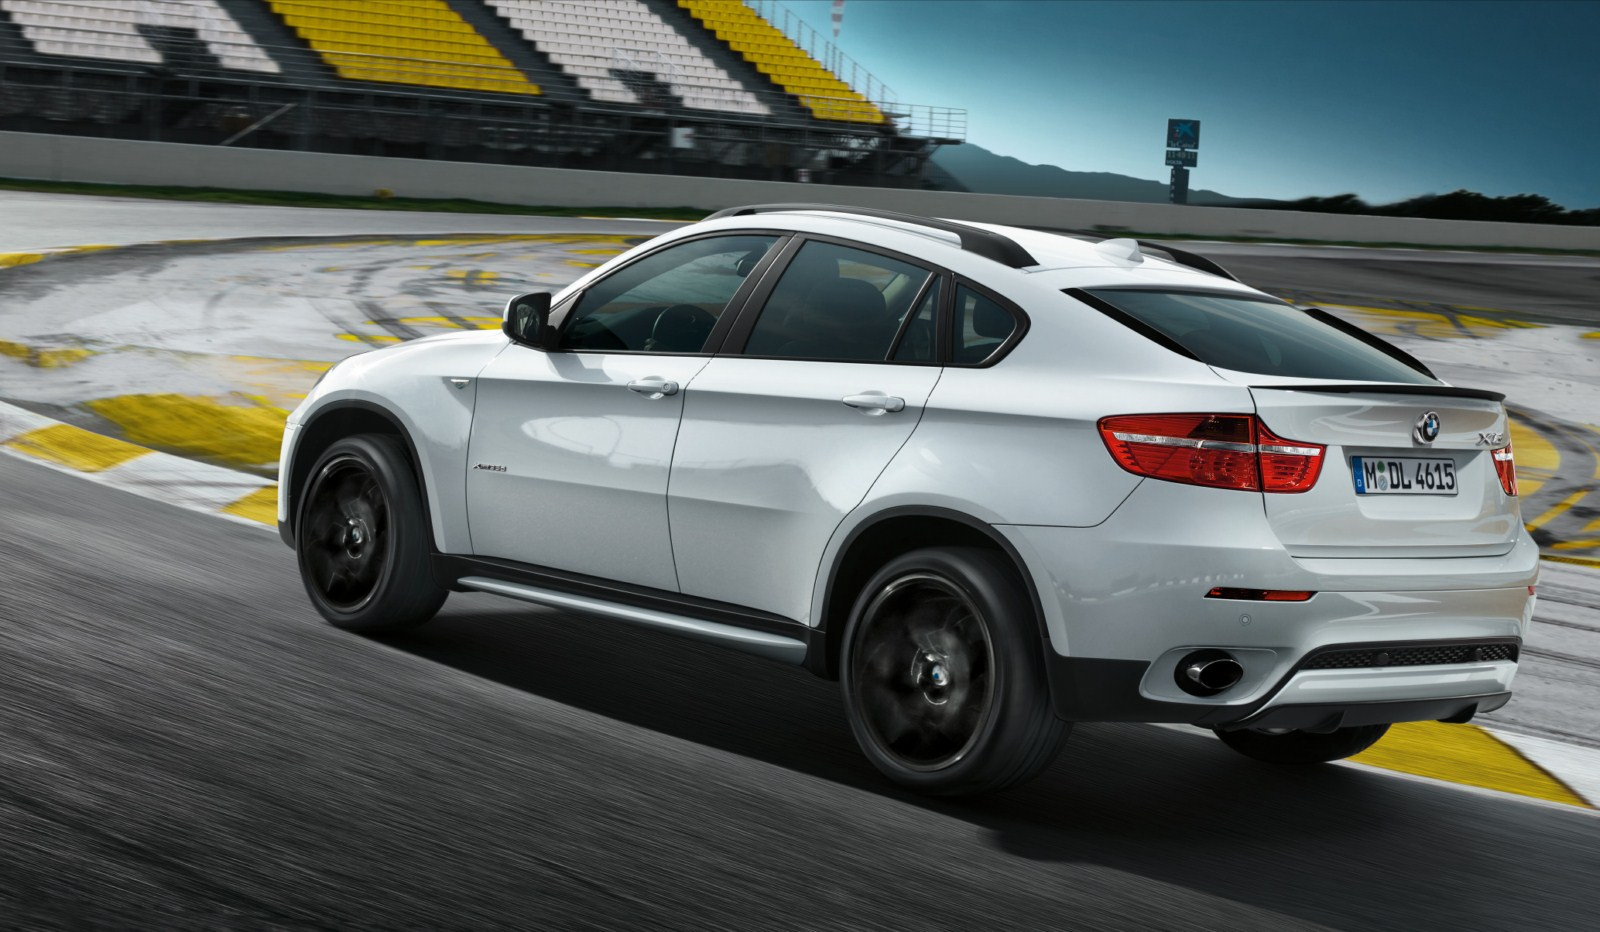 bmw x6 2010 images #13